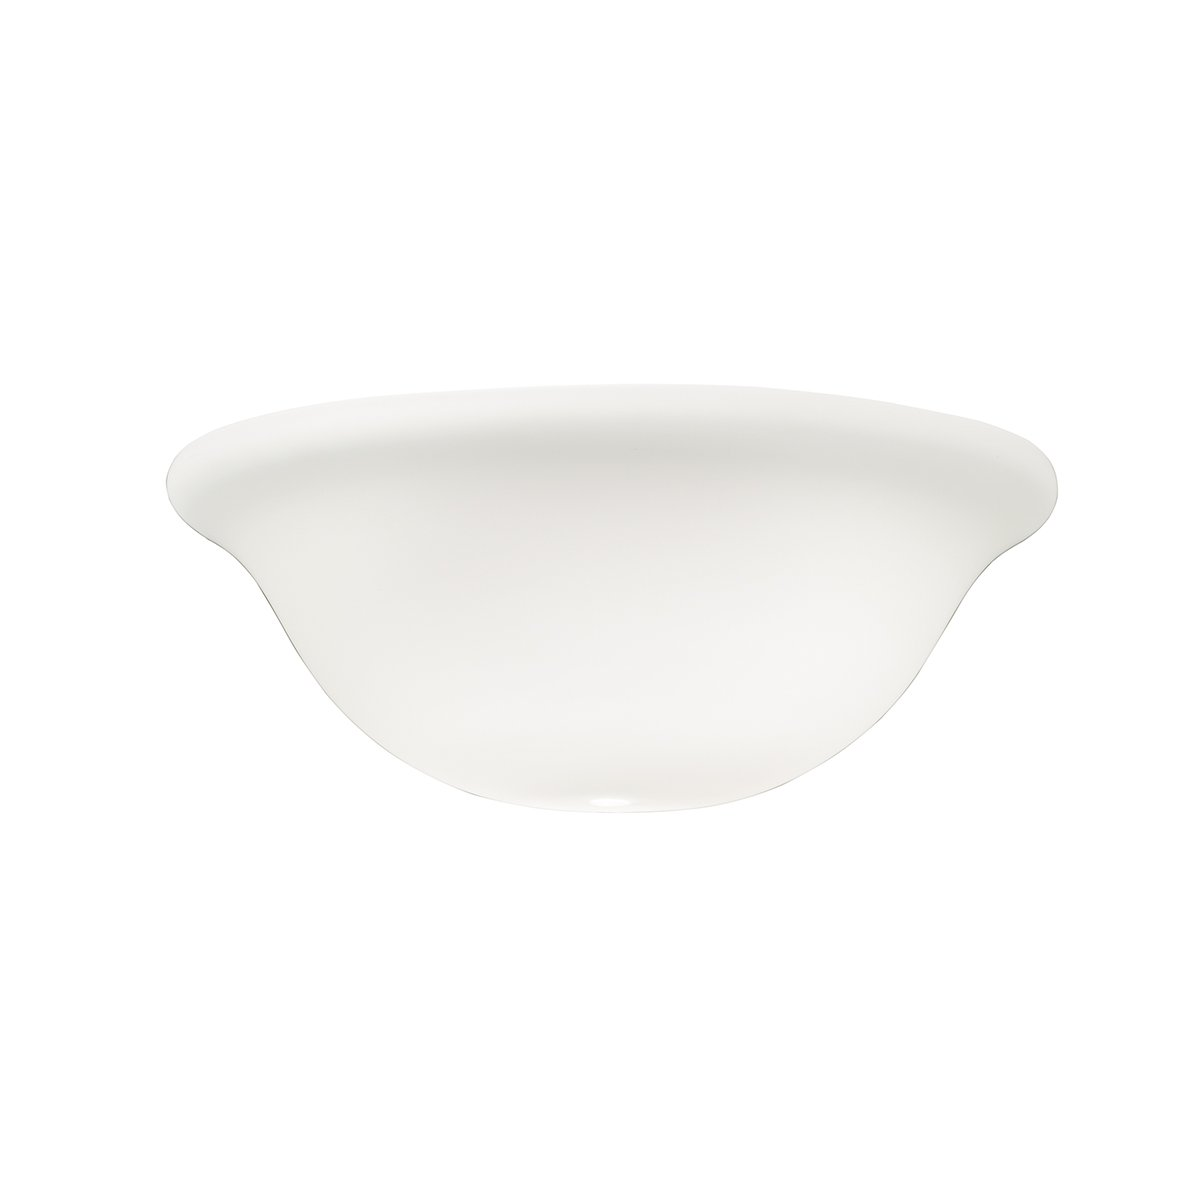 Kichler 340013 Accessory Universal Bowl Etched Cased Opal Glass Shade B00RKJEMQW ホワイト ホワイト